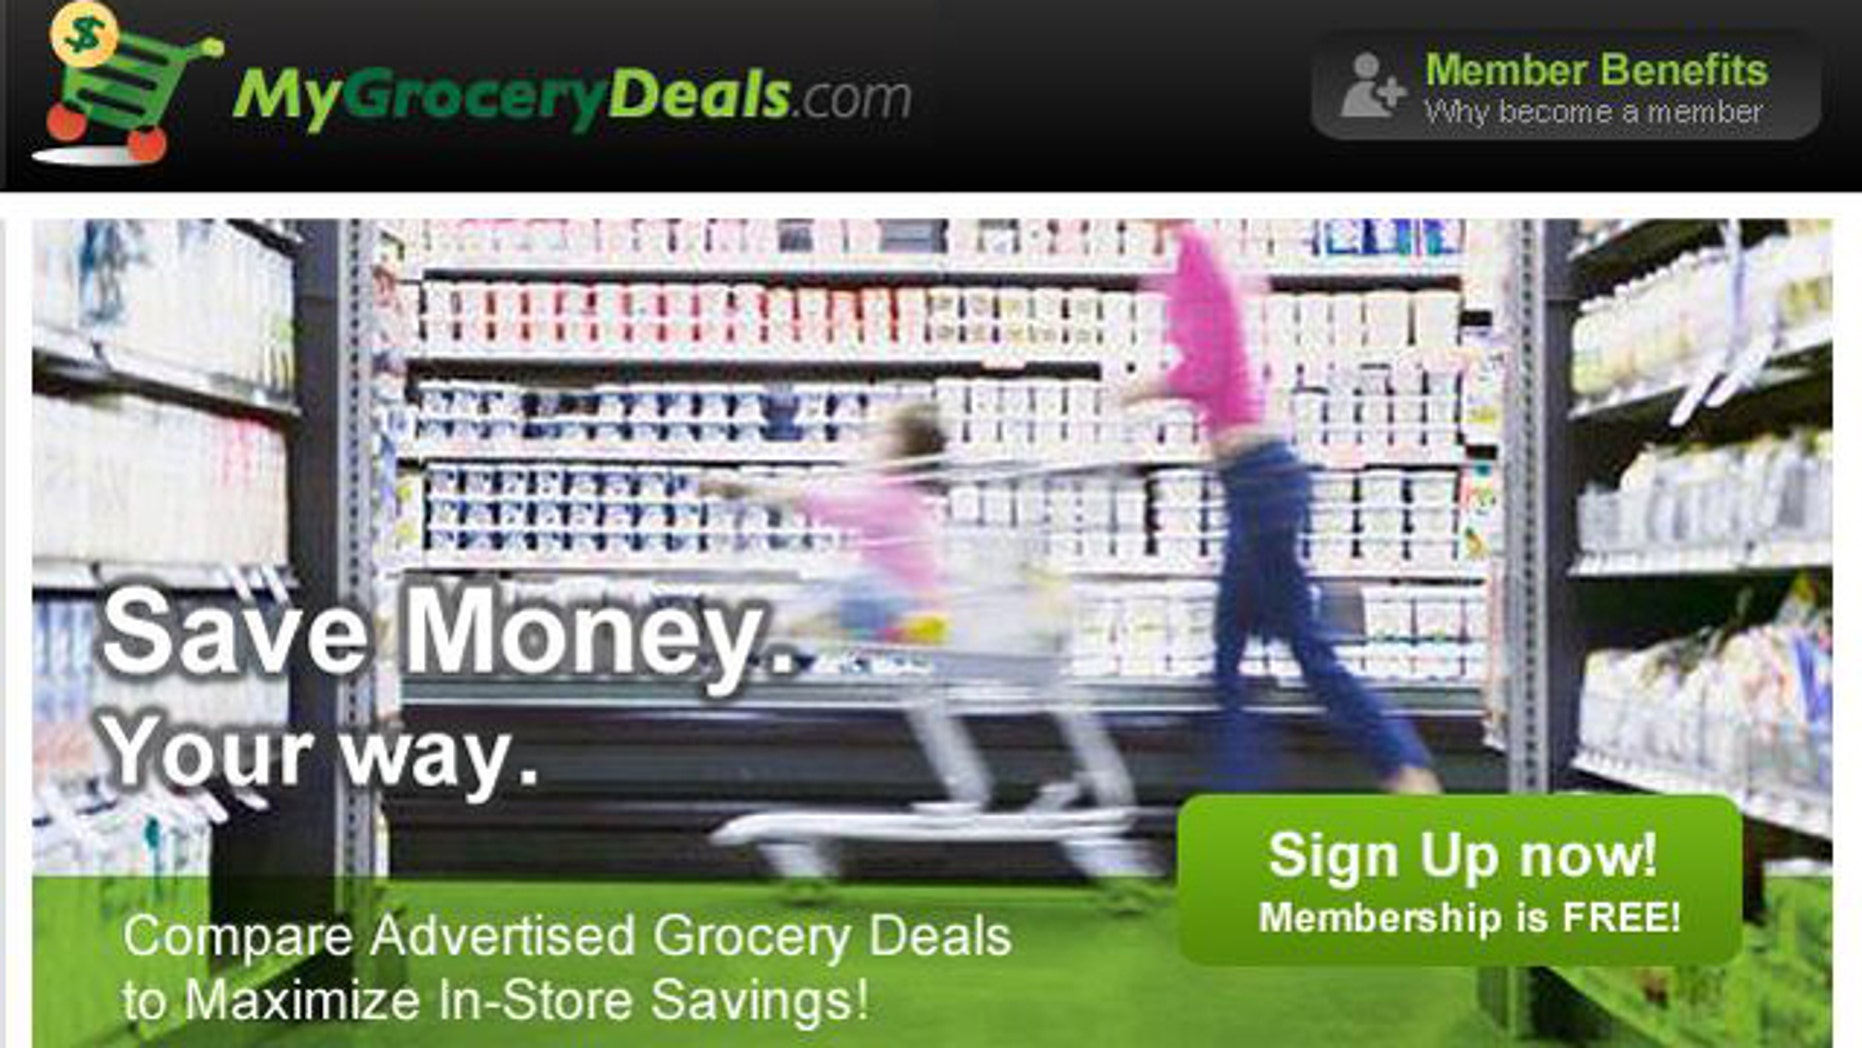 A screenshot of the website for MyGroceryDeals.com, where you can find deals and bargains at local area supermarkets.